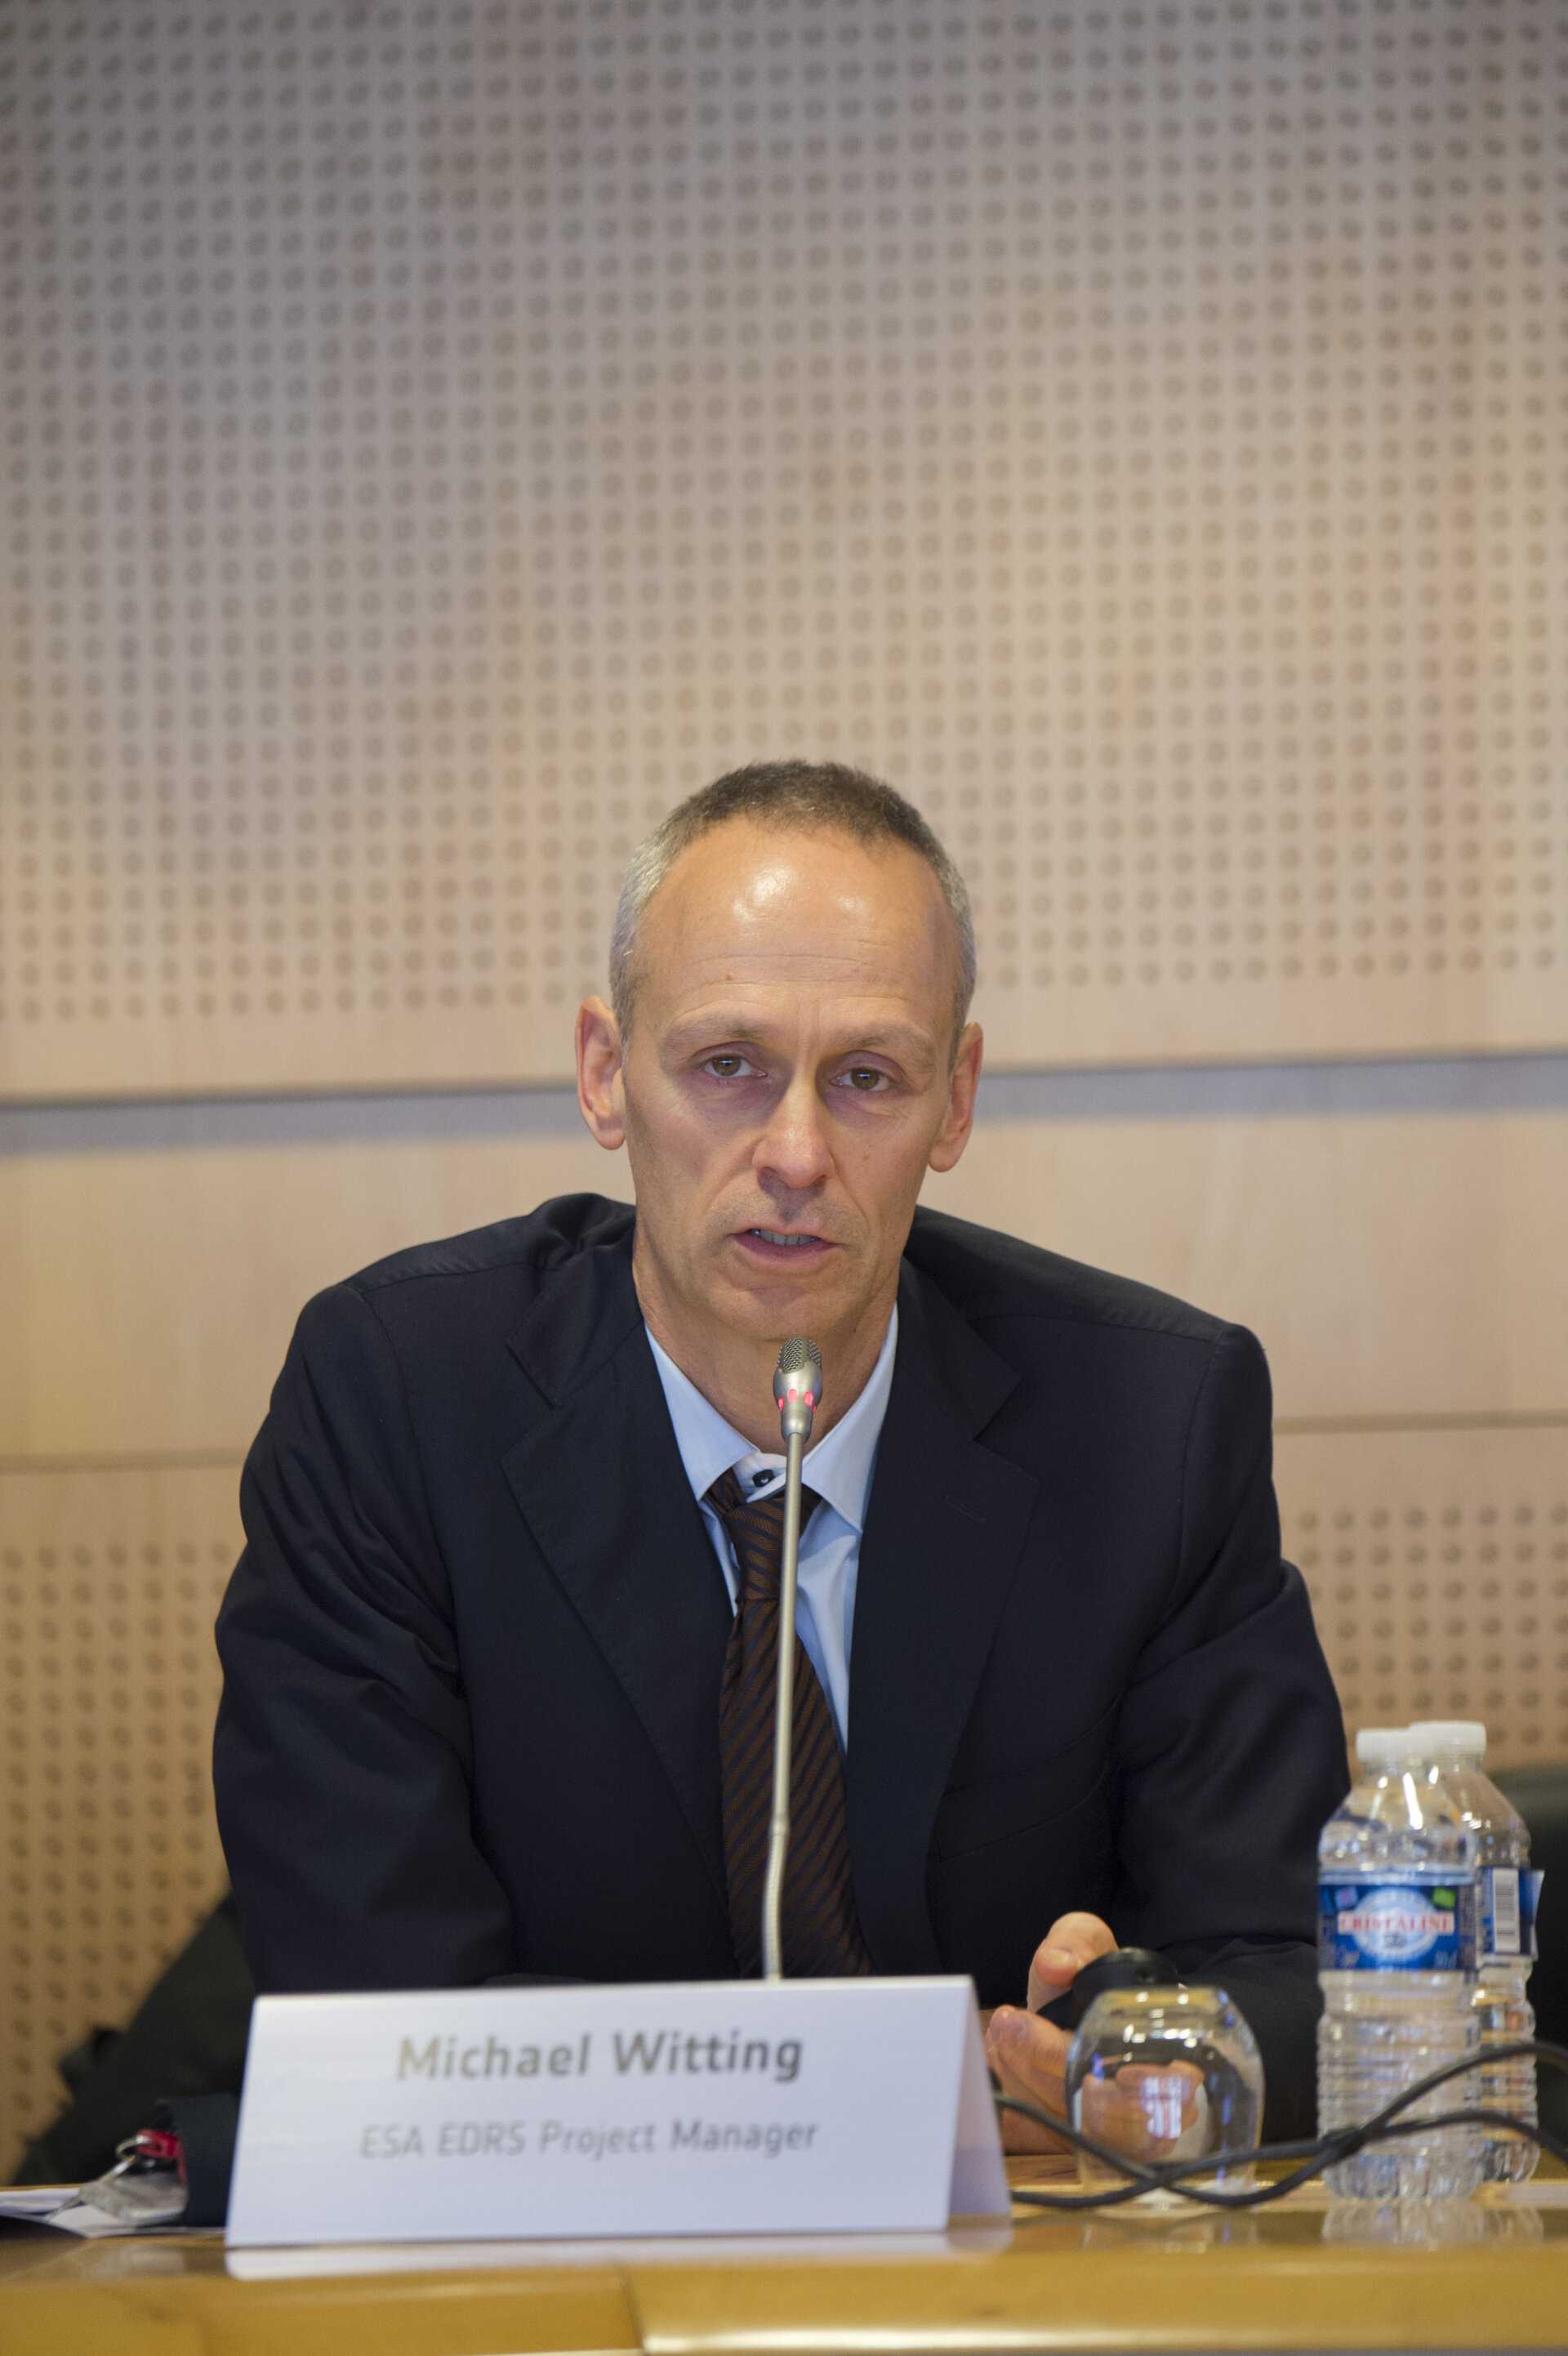 Michael Witting at the EDRS press briefing on 15 January 2016